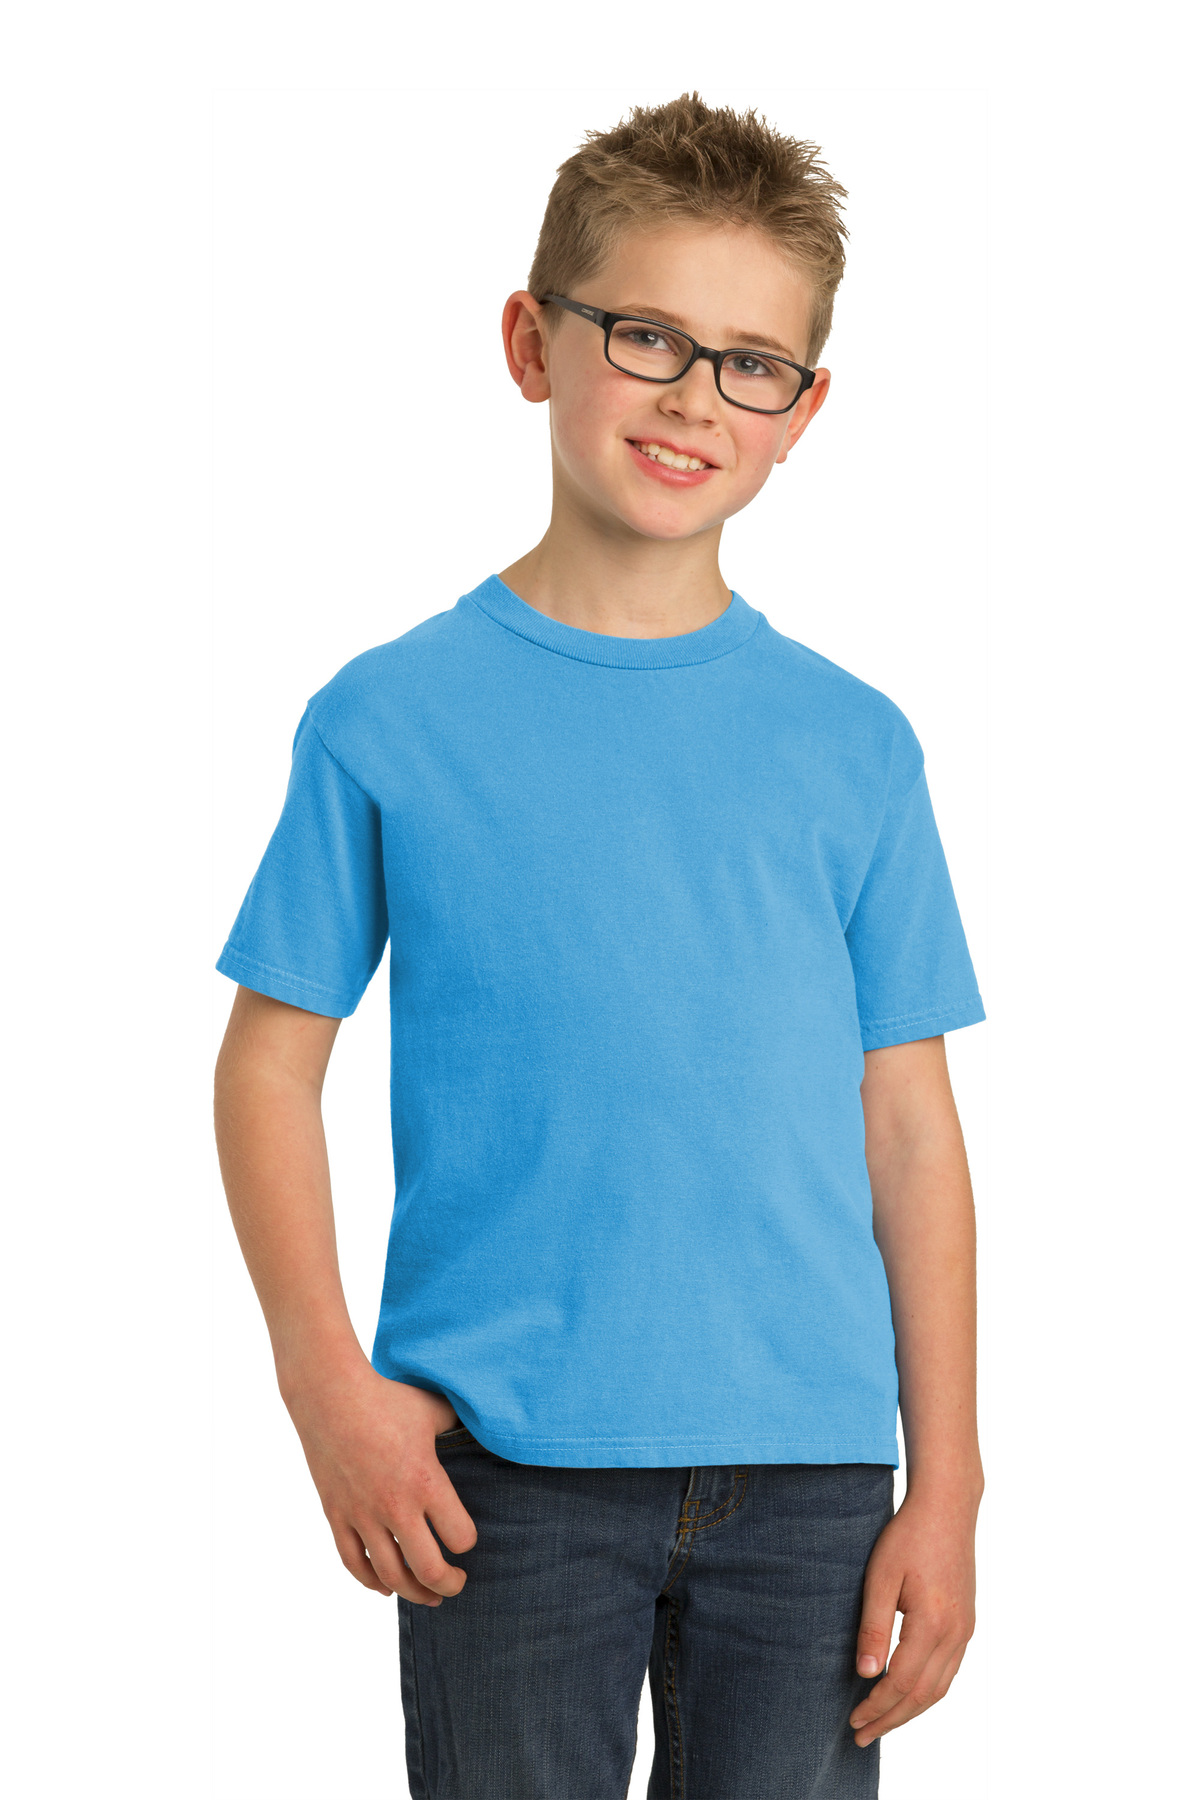 Port Company Youth Pigment Dyed Tee 5 56 100 Cotton T